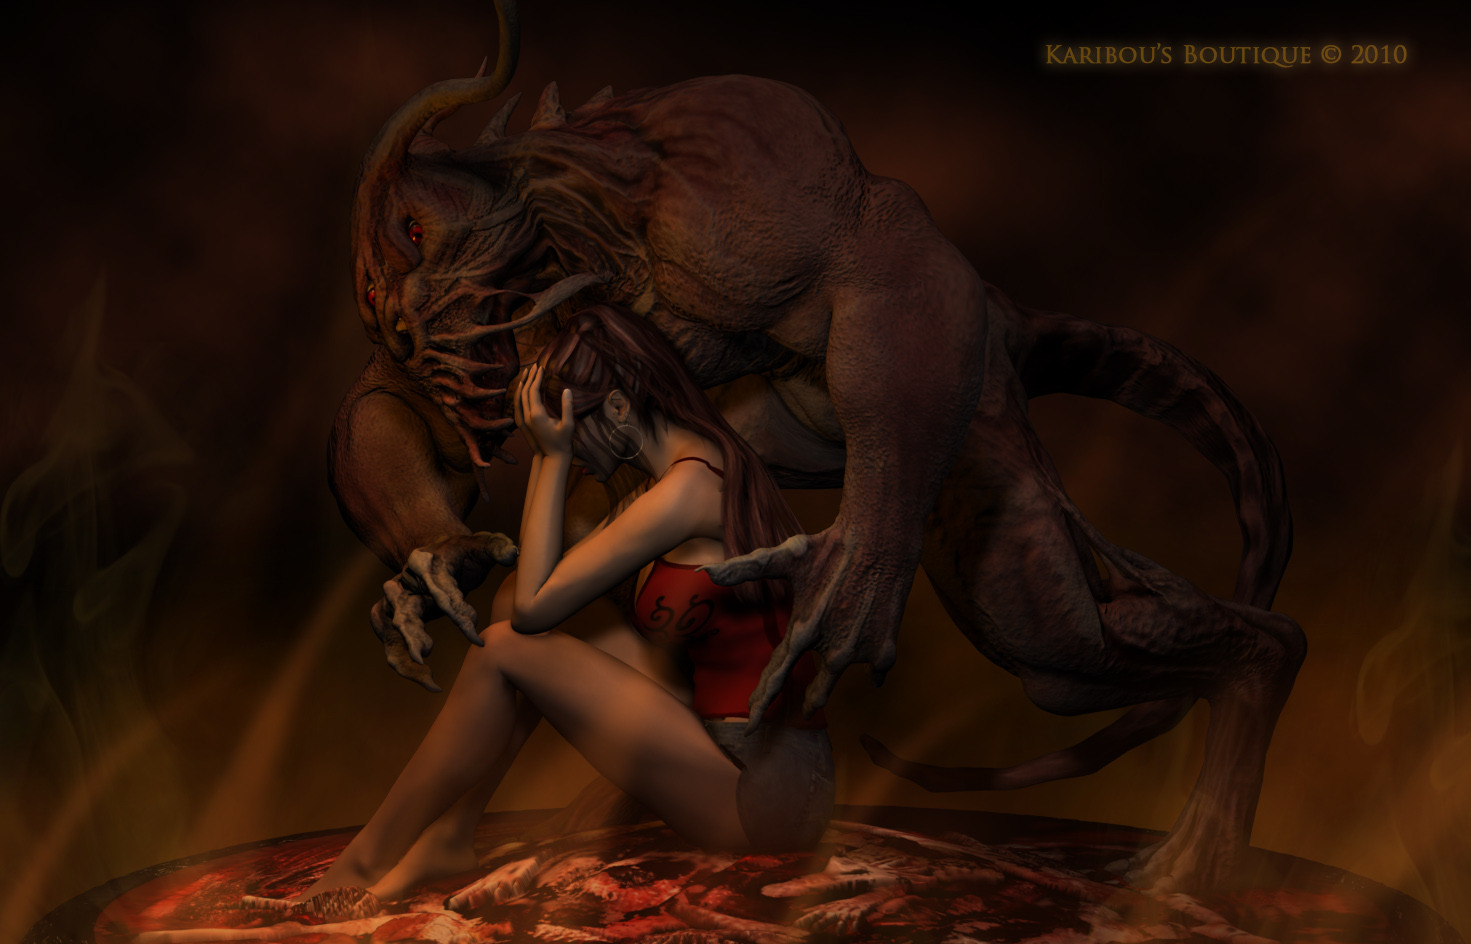 The Beast I Have Within Me